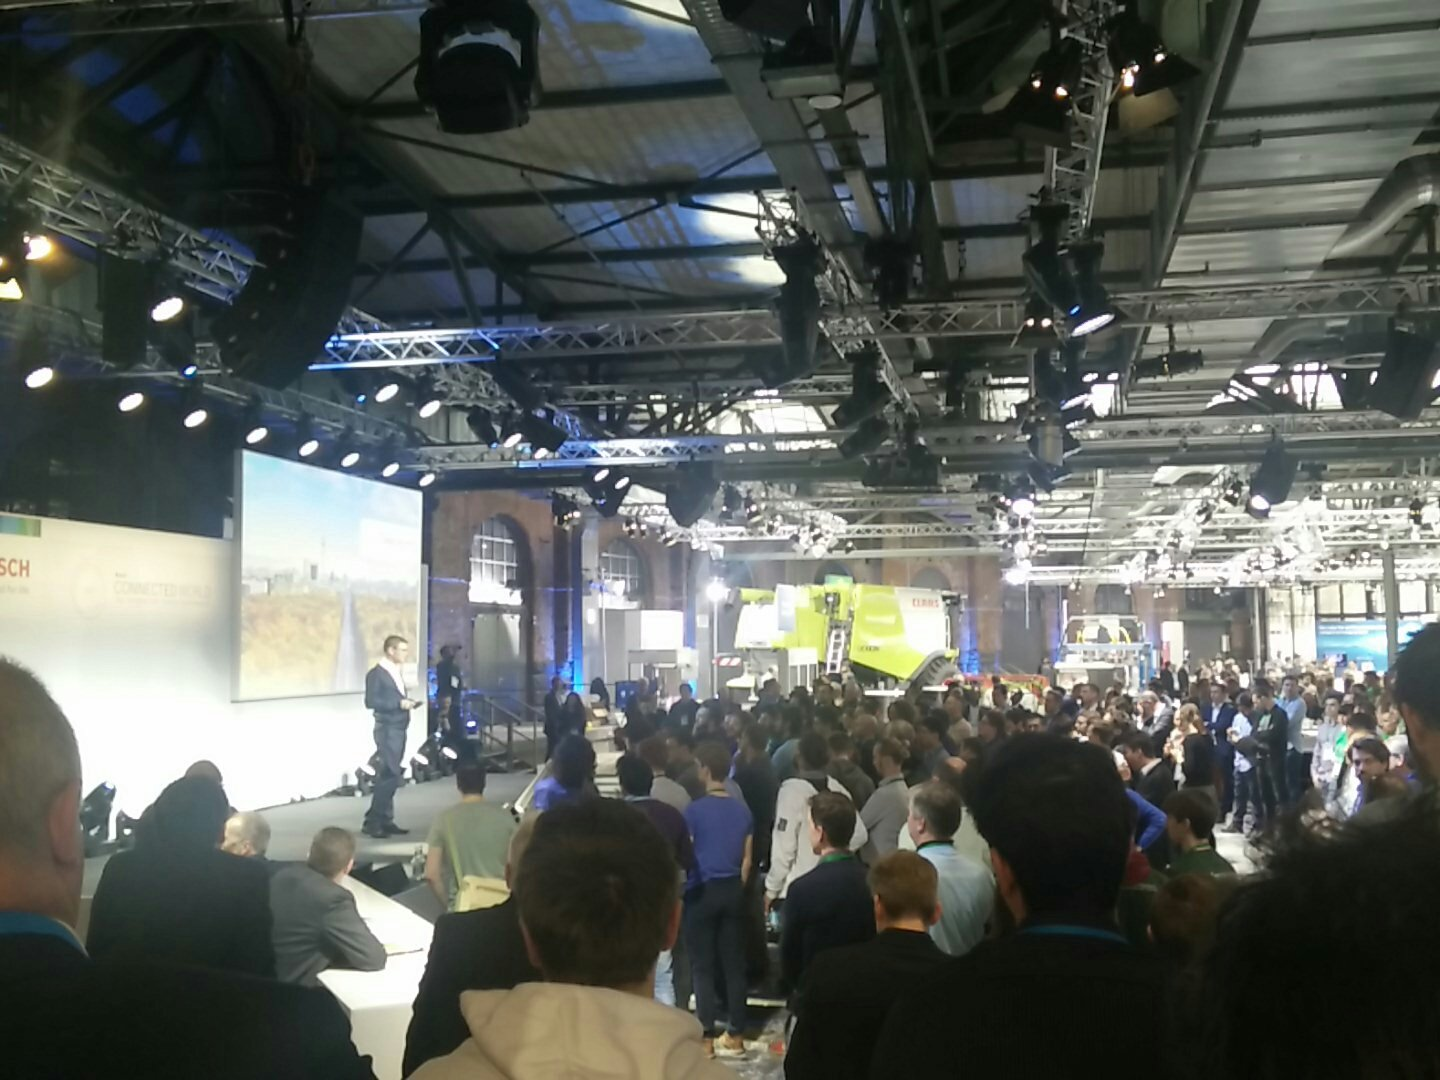 #BCW17 meets #BCX17. Presentation of winning projects of #BCX17 on the stages of  #BCW17 https://t.co/IWeJMddkcR